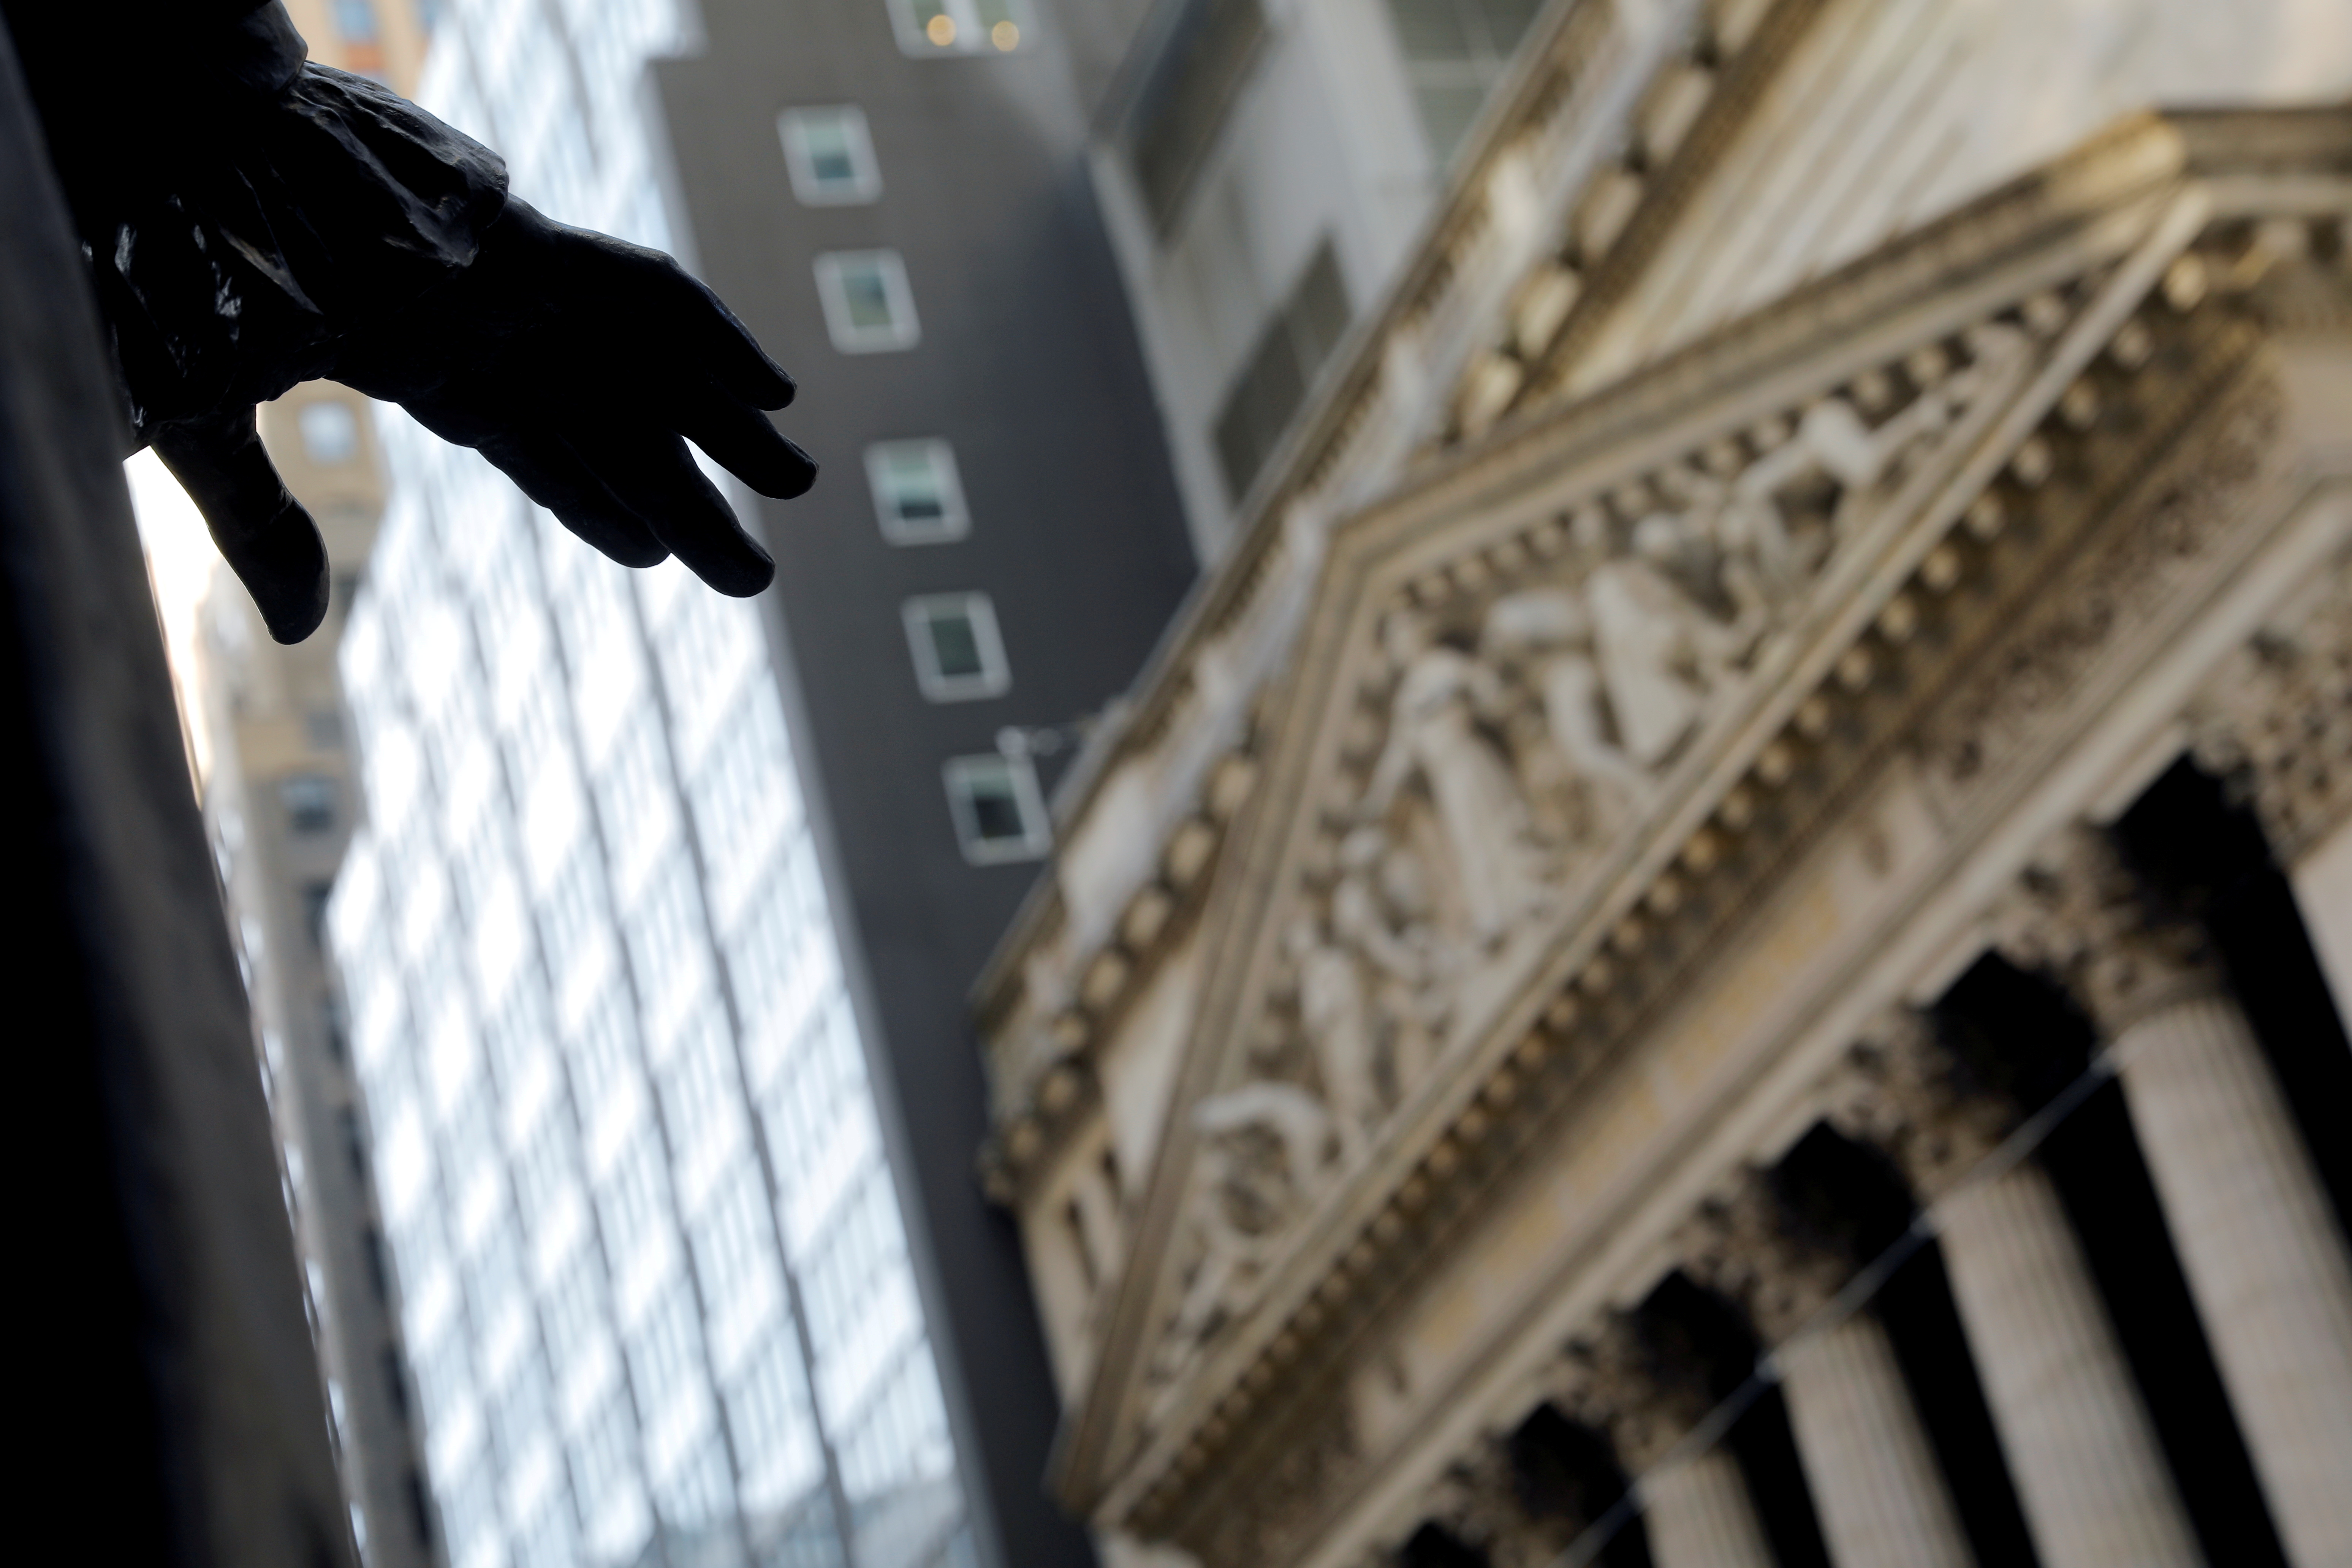 The hand of a sculpture of former U.S. President George Washington is pictured with the facade of the New York Stock Exchange (NYSE) in Manhattan in New York City, New York, U.S., January 28, 2021. REUTERS/Mike Segar/File Photo